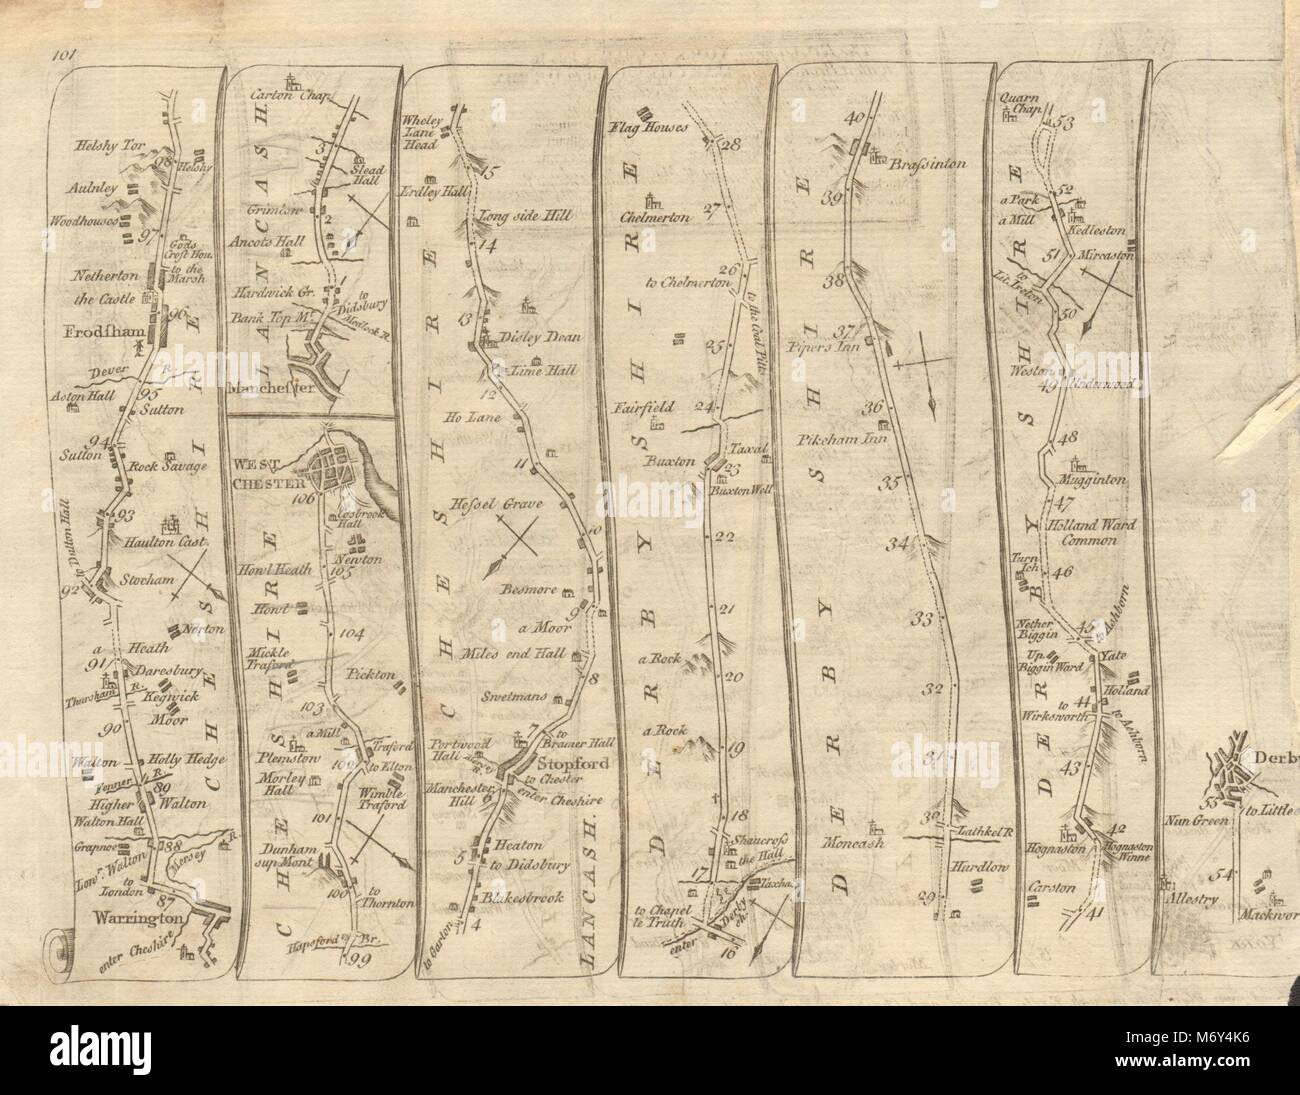 Warrington Chester Manchester Stockport Buxton Derby. KITCHIN road map 1767 - Stock Image